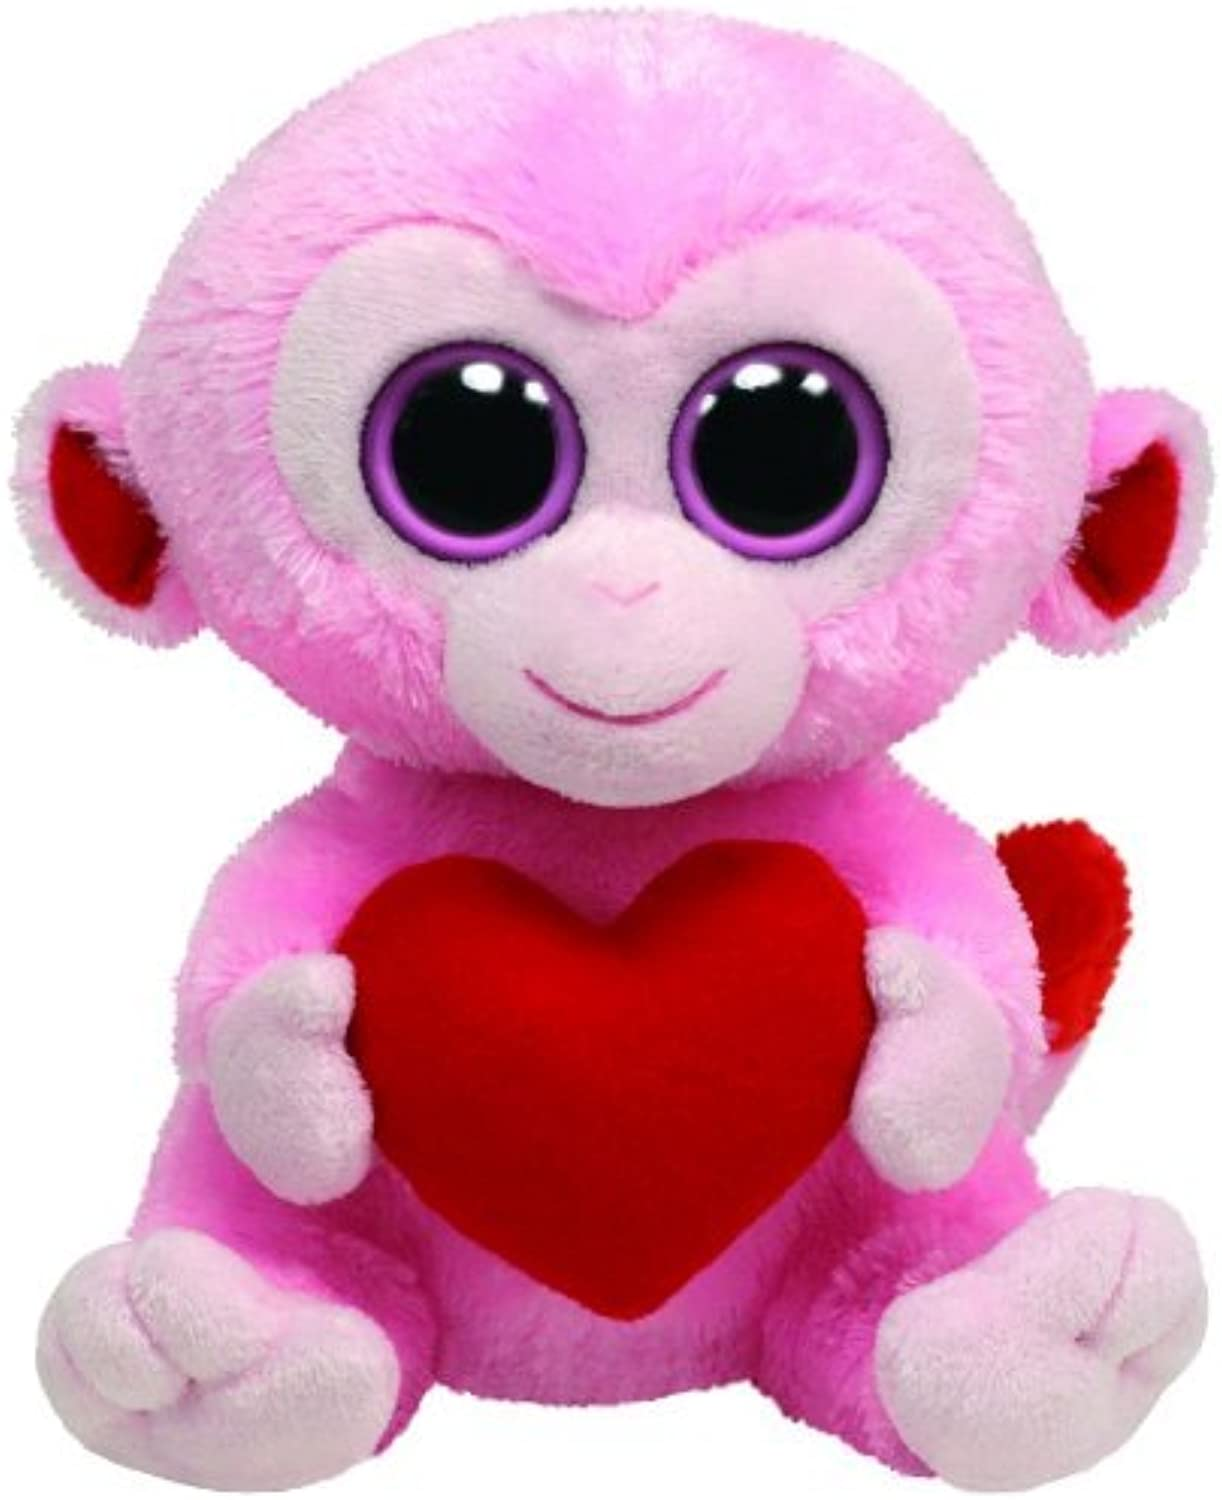 Ty Beanie Boos Julep Pink Monkey with Heart by Ty Beanie Boos